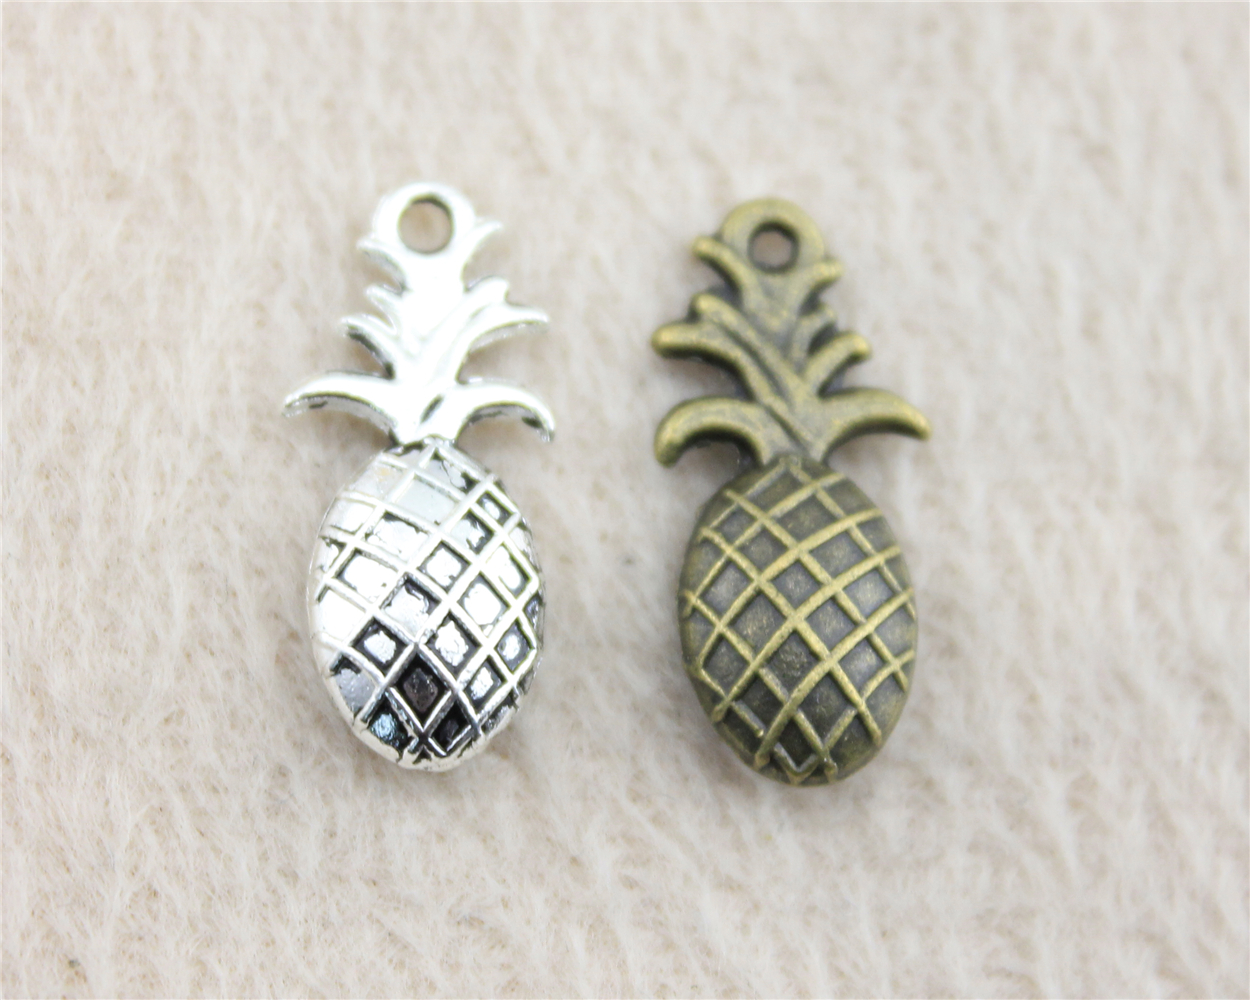 10pcs 10*23mm Antique Silver Or Bronze Pineapple Charm Pendant For Bracelet Necklace Jewelry Accessories Making Handmade DIY